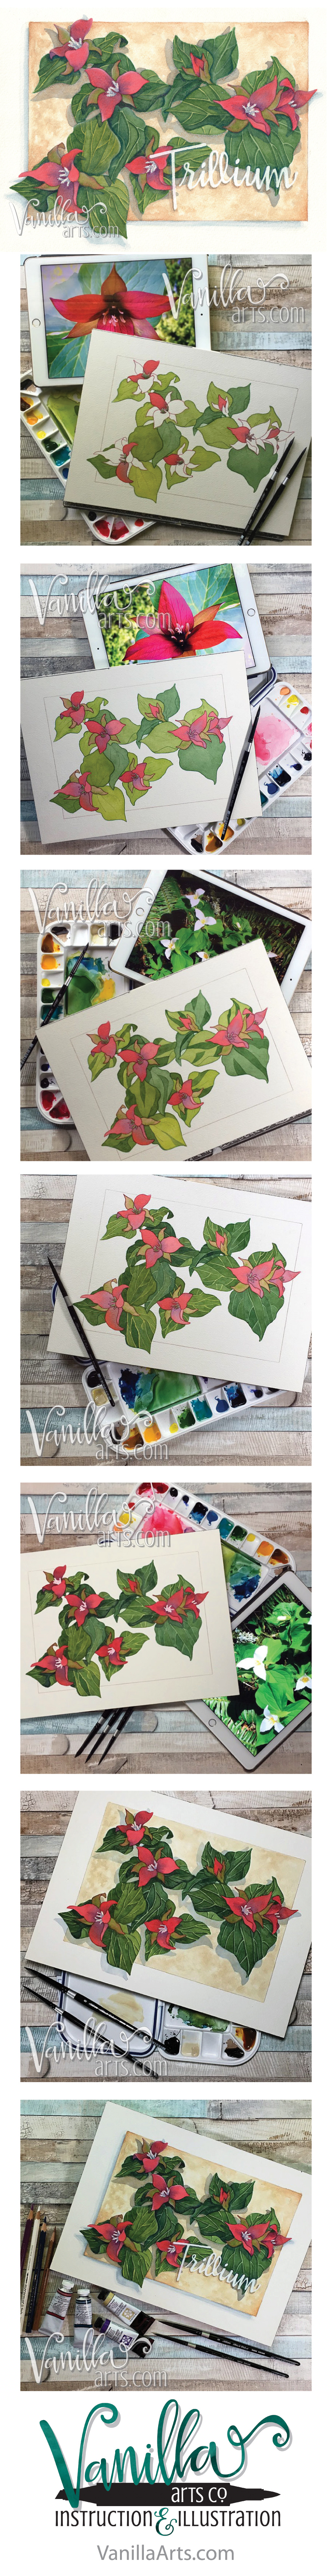 June 2016's H2Oh! class project. Teaching intermediate marker colorers to watercolor | VanillaArts.com